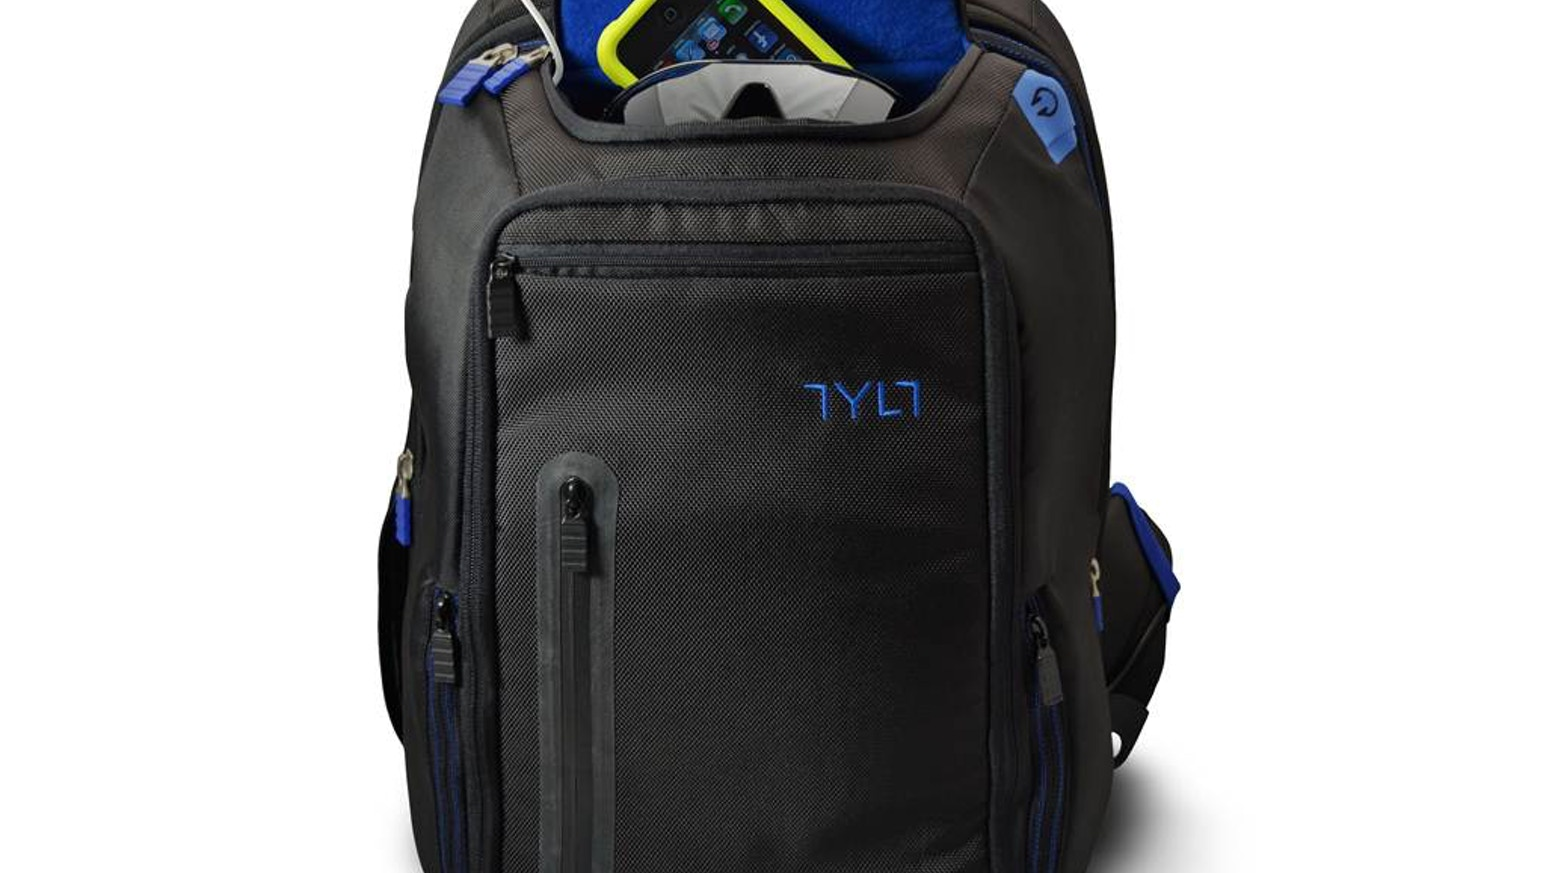 A lightweight backpack that can charge your smartphone 4 times or an iPad one full charge, and recharge via a USB port